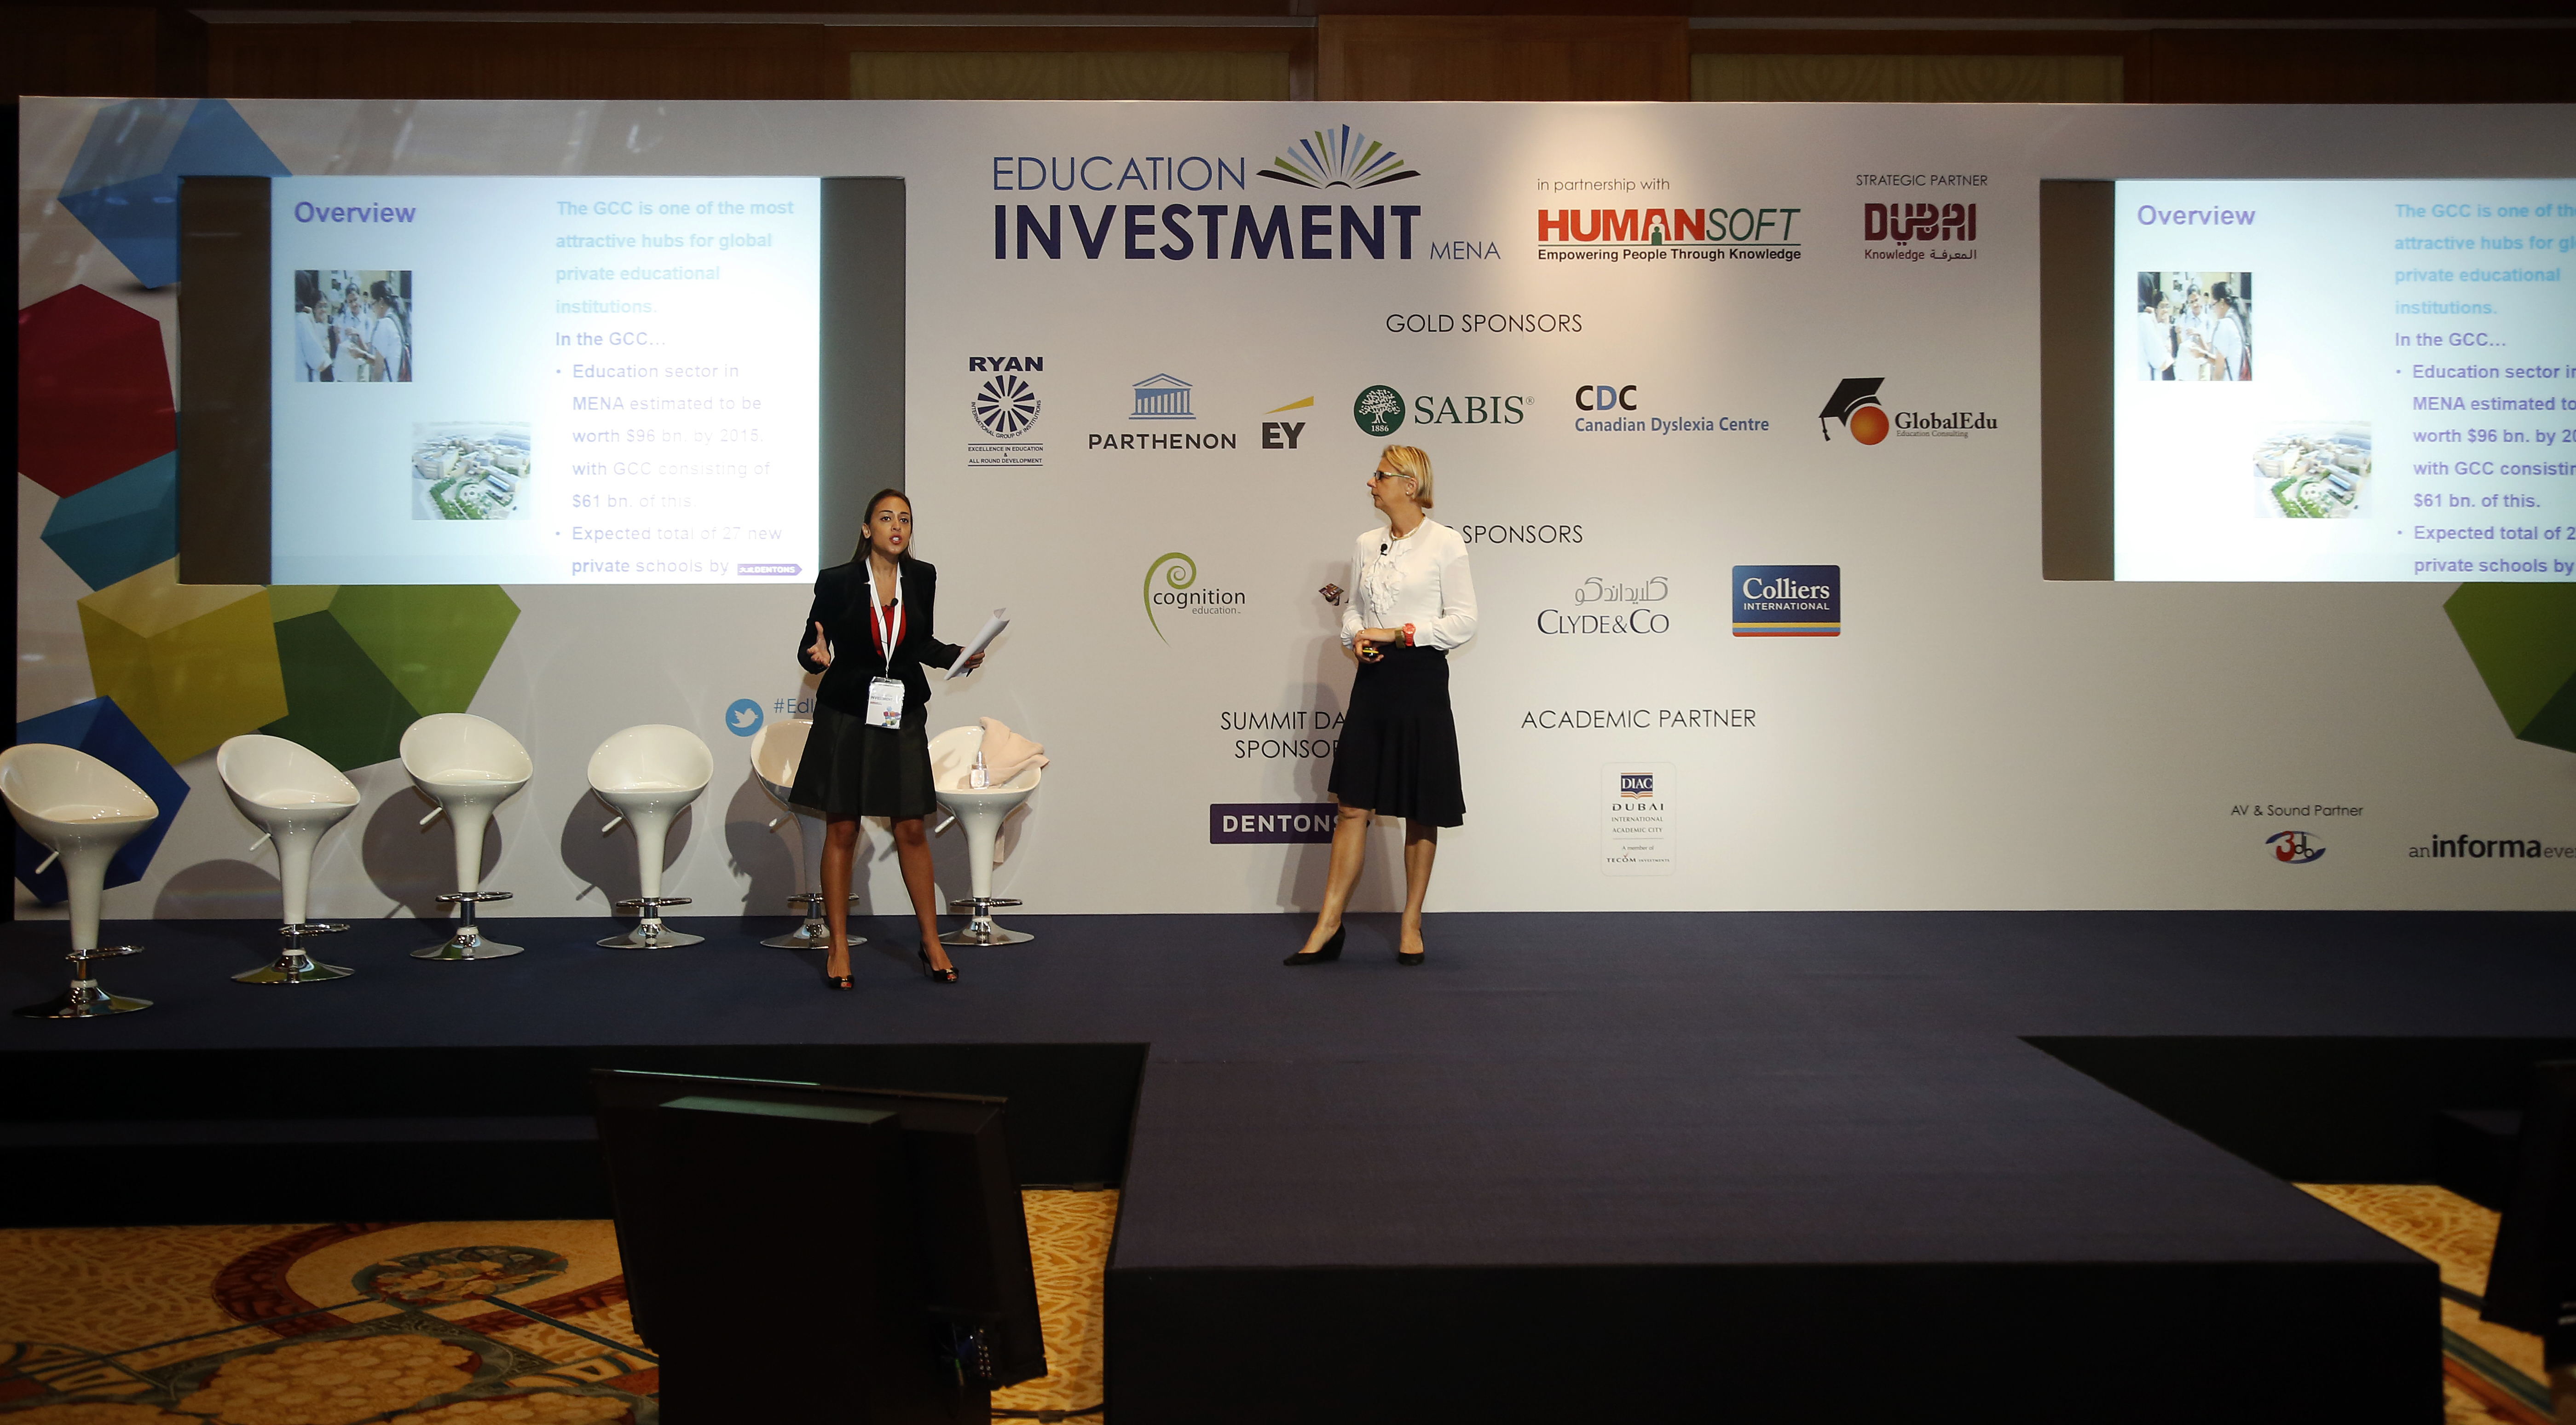 Education Investment MENA conference